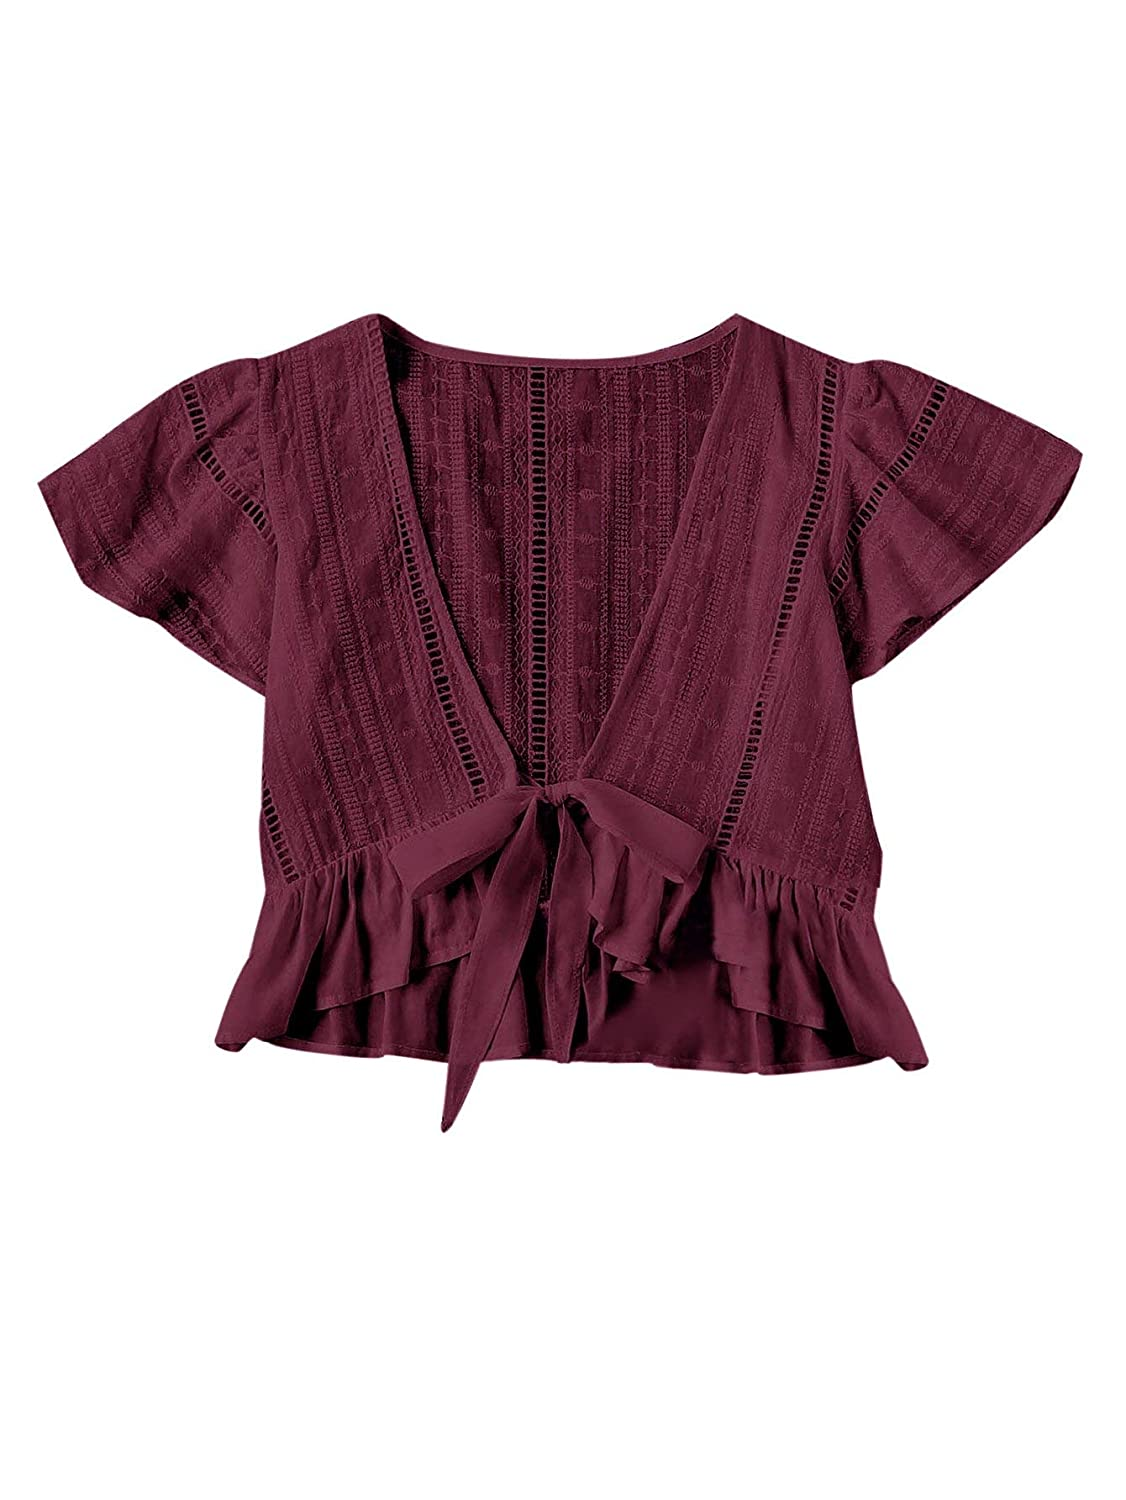 Burgundy Floerns Women's Summer Cute Short Sleeve Bow Tie Crop Blouse Top